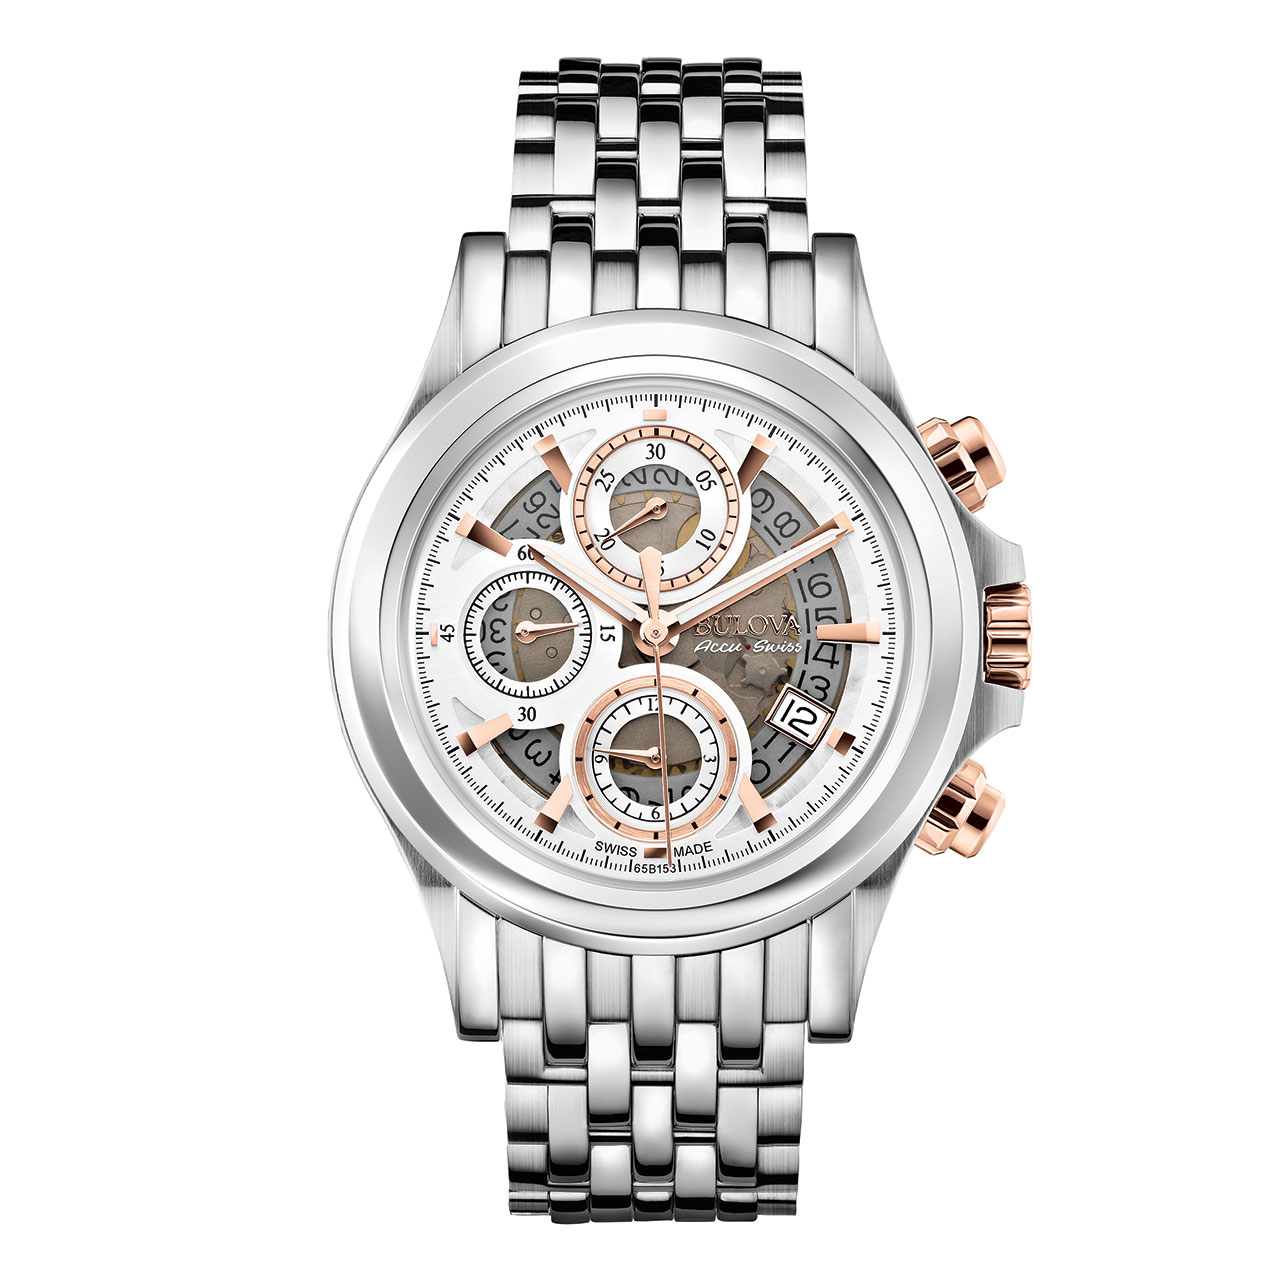 Bulova Accutron Kirkwood (style 65B153) Watch